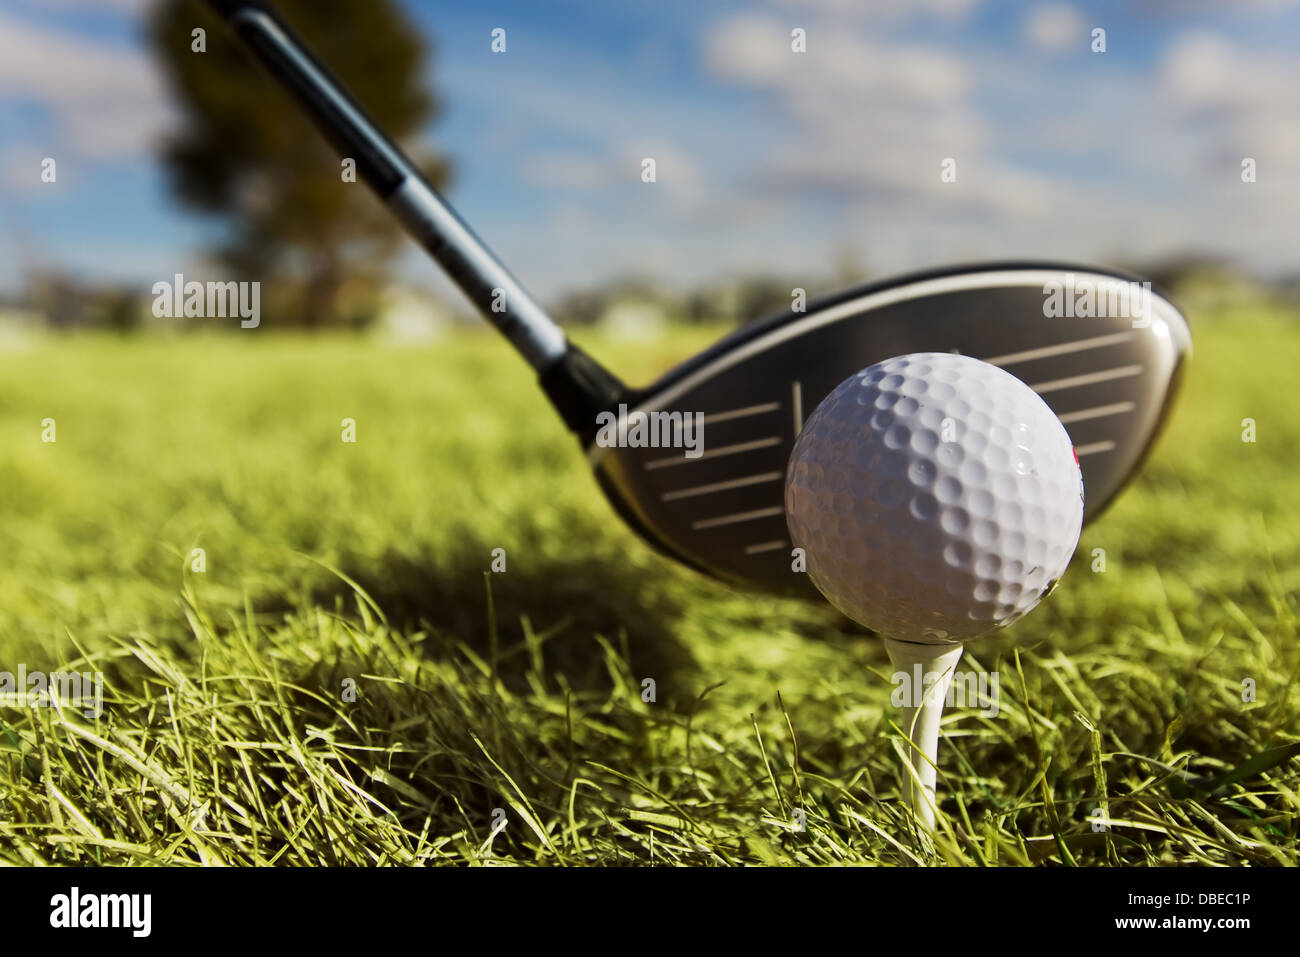 A golf ball and left handed driver with main focus on the ball. - Stock Image